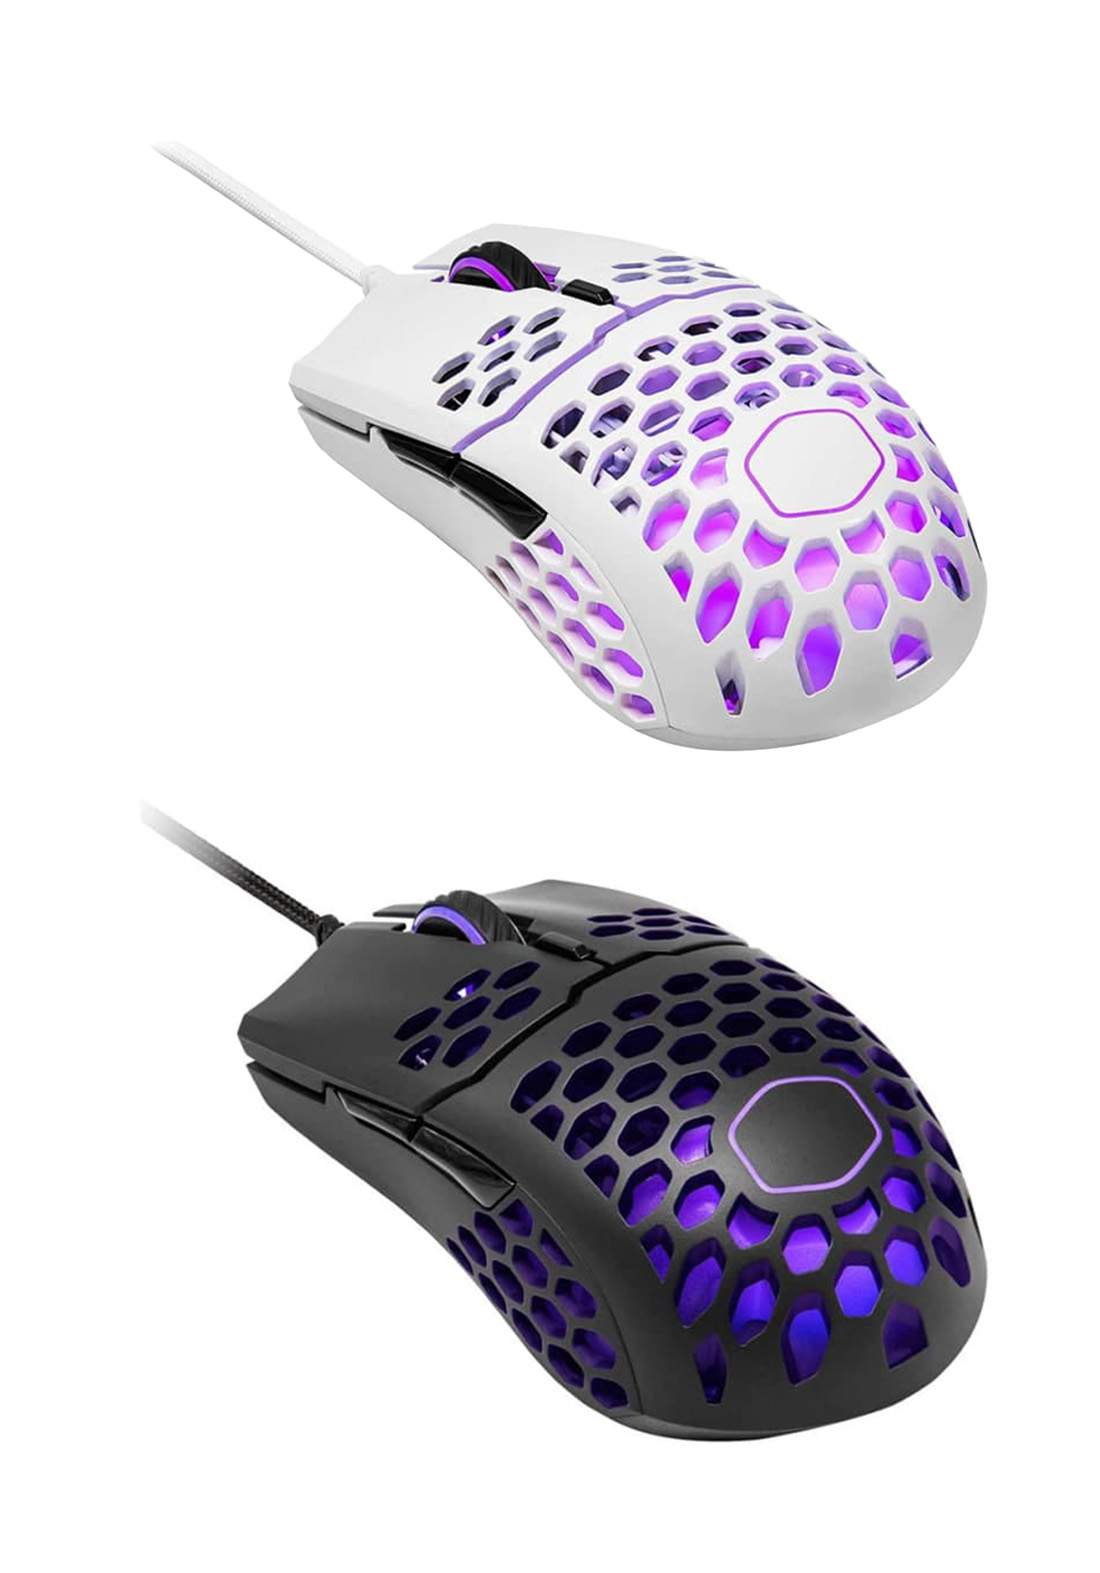 Cooler Master MM711  RGB 60G with Lightweight 16,000 DPI Gaming Mouse - White فارة